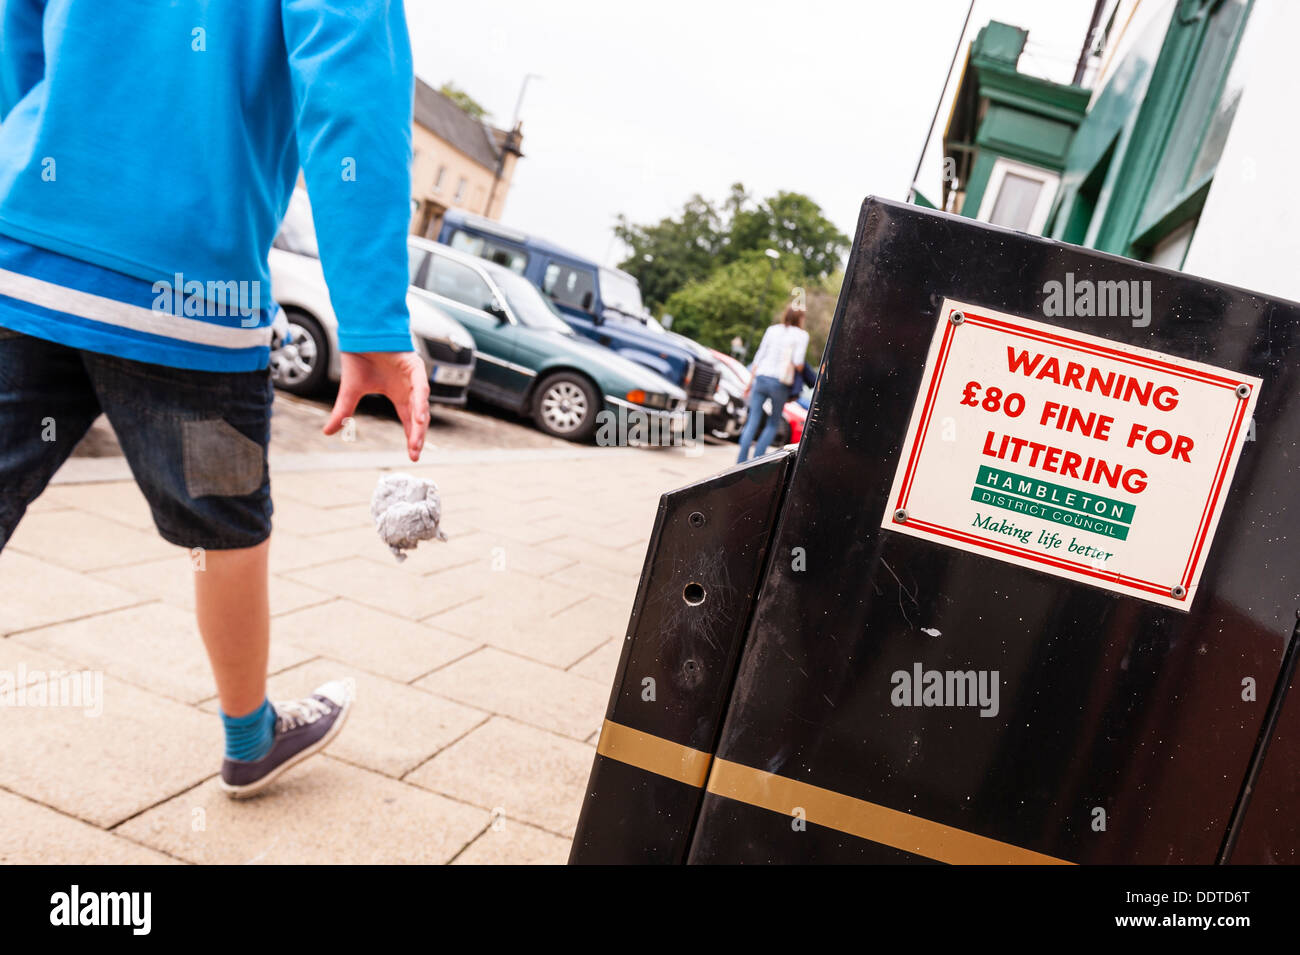 A boy throws litter on the ground as he walks past a bin warning of an £80 fine for littering in the Uk - Stock Image